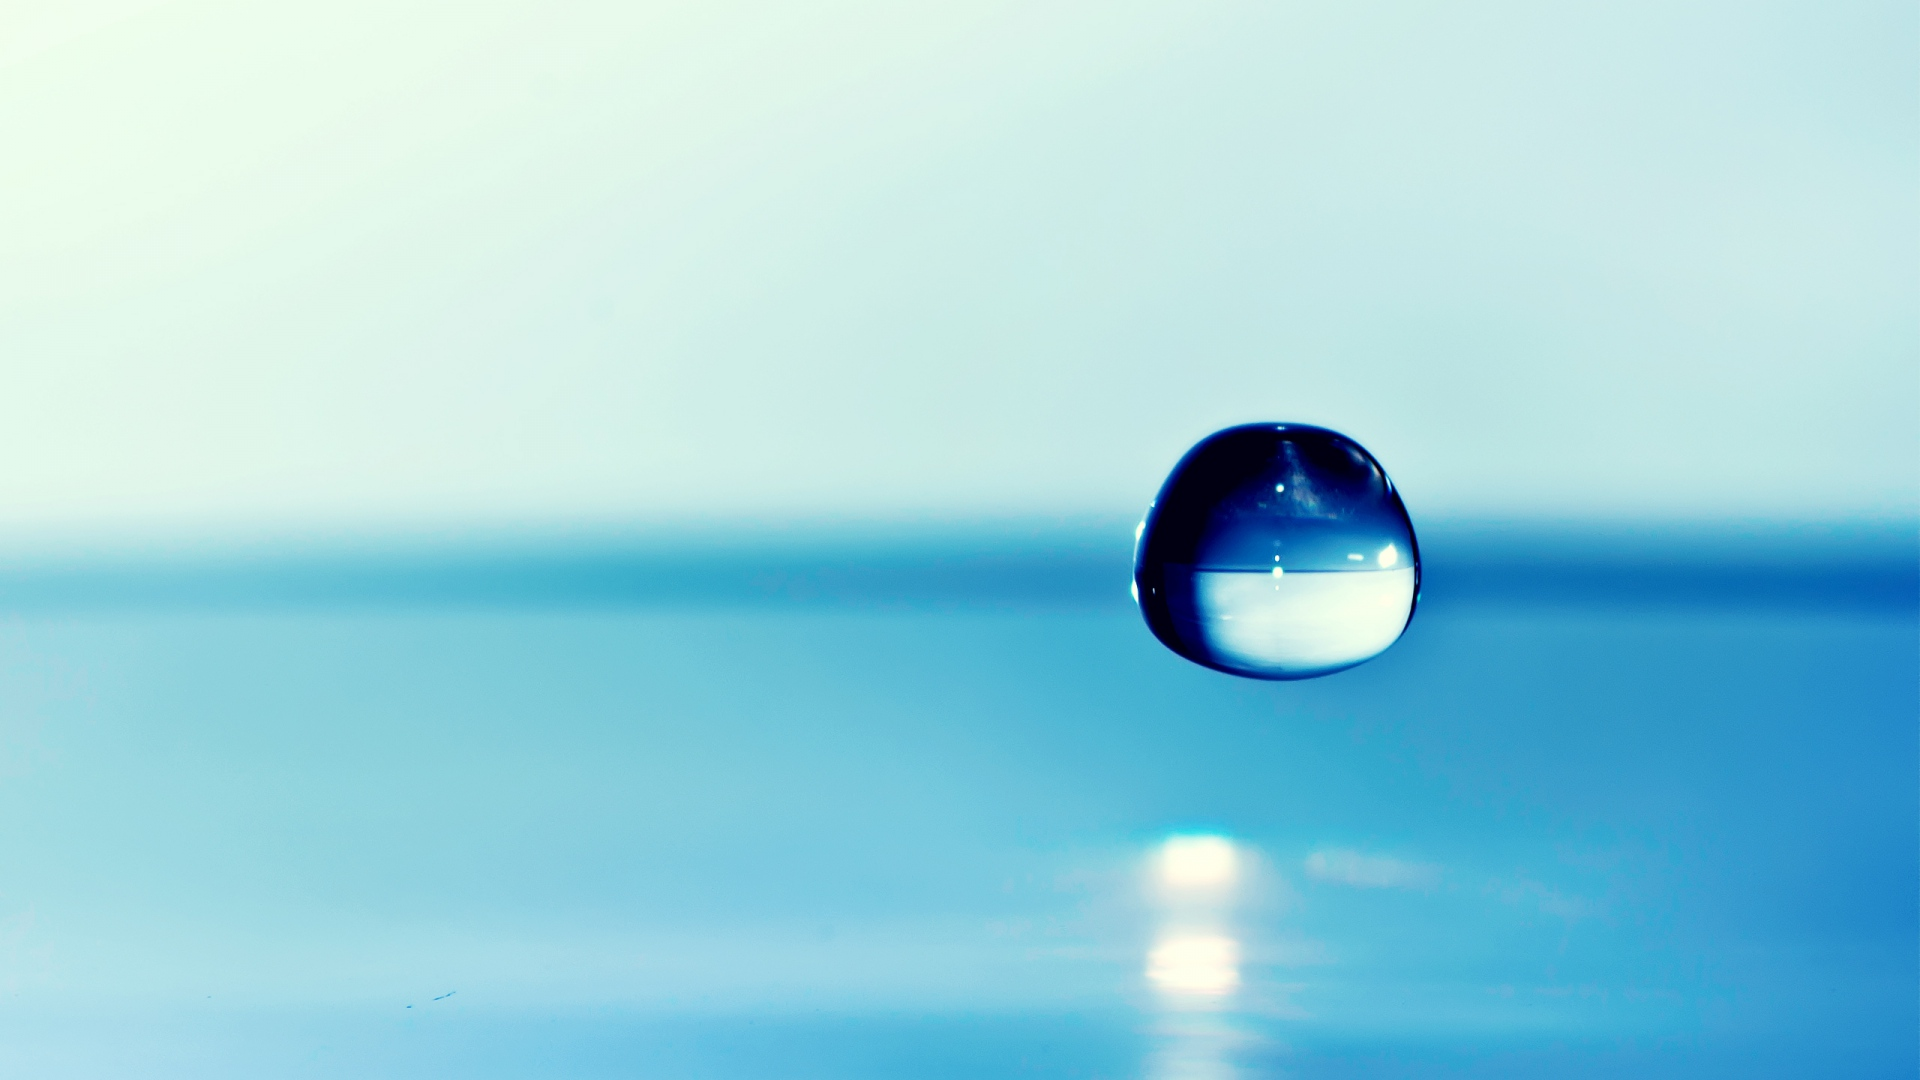 Download Wallpaper 1920x1080 Water Drop Background Blue Focus